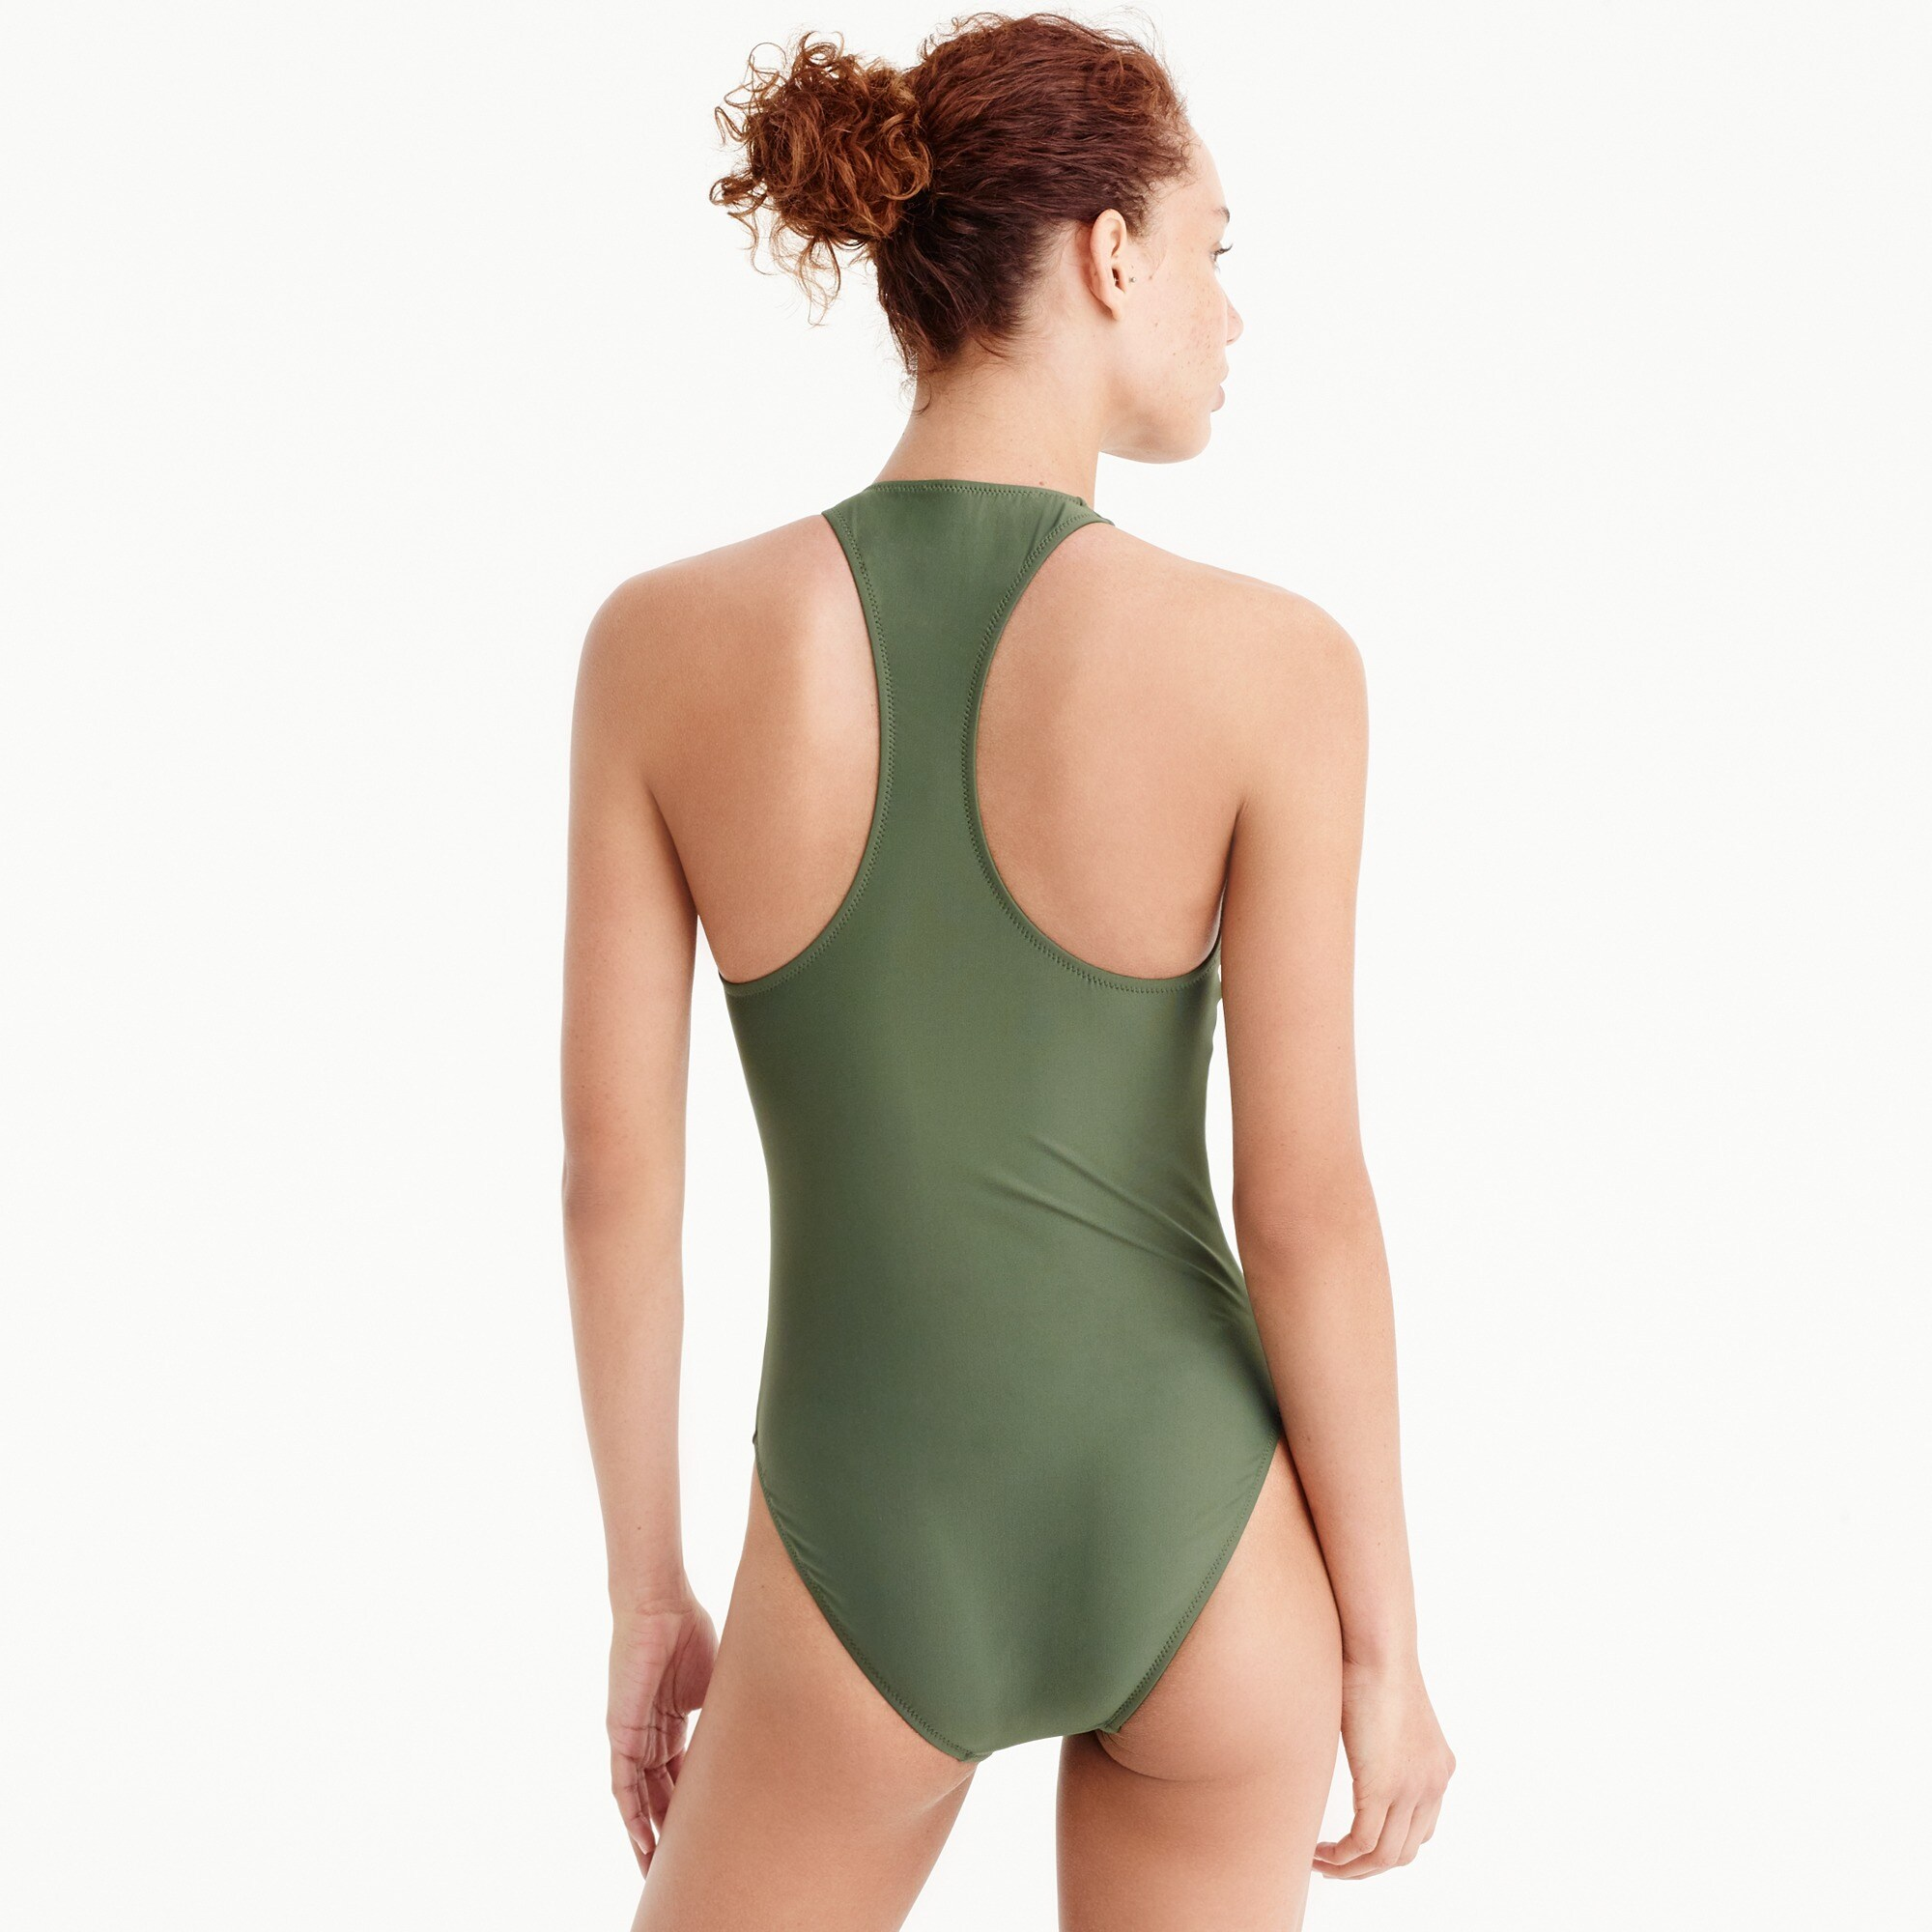 Zip-front one-piece swimsuit